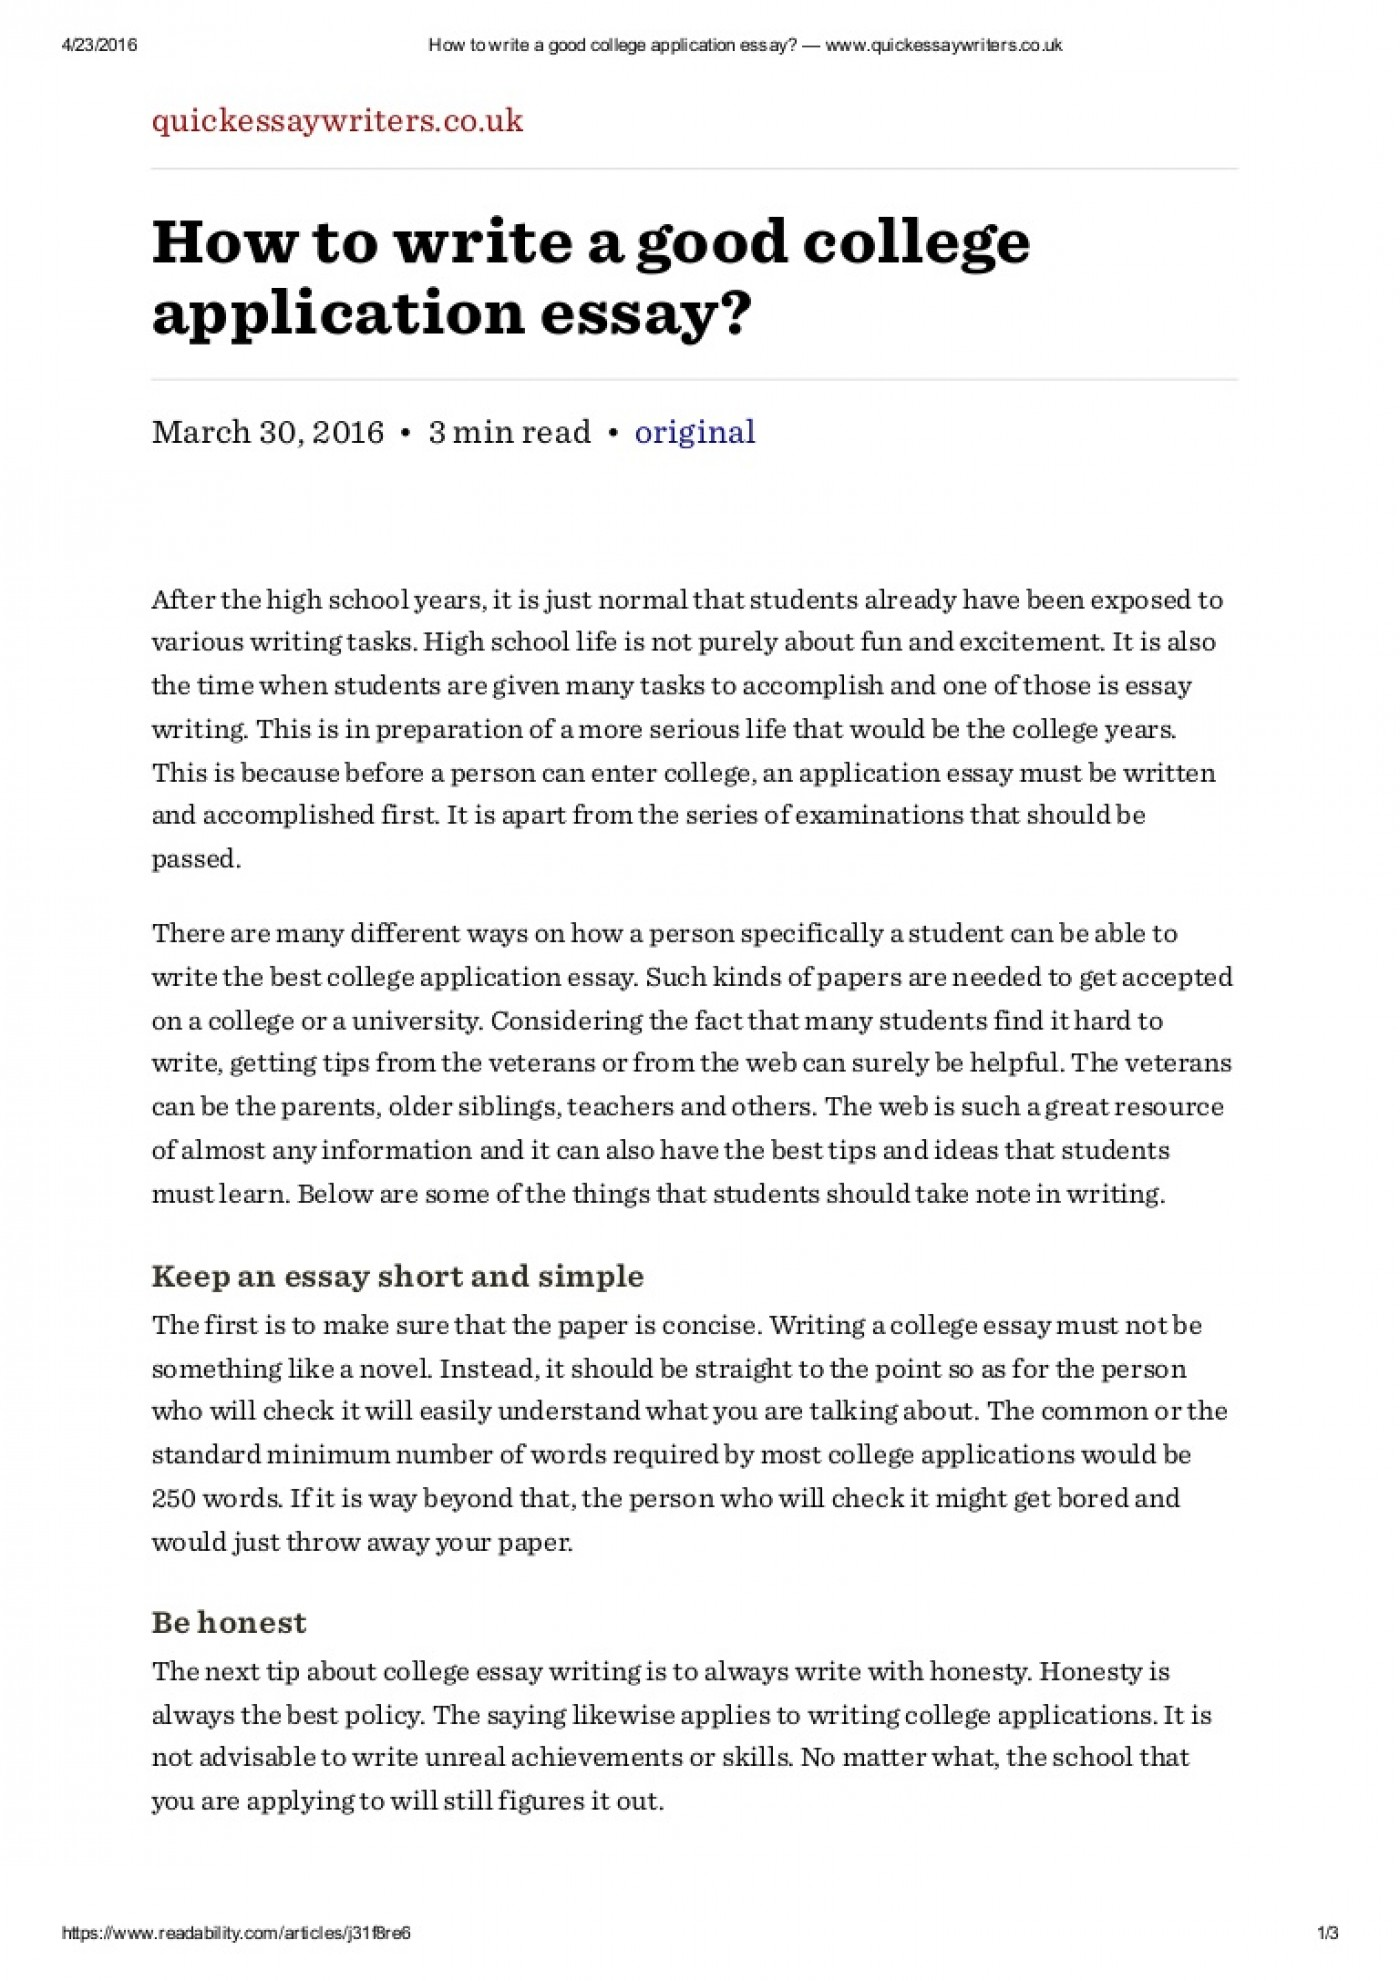 009 Howtowriteagoodcollegeapplicationessaywww Thumbnail Essay Example Writing College Rare A Application Topics To Write On Tips For About Yourself 1400